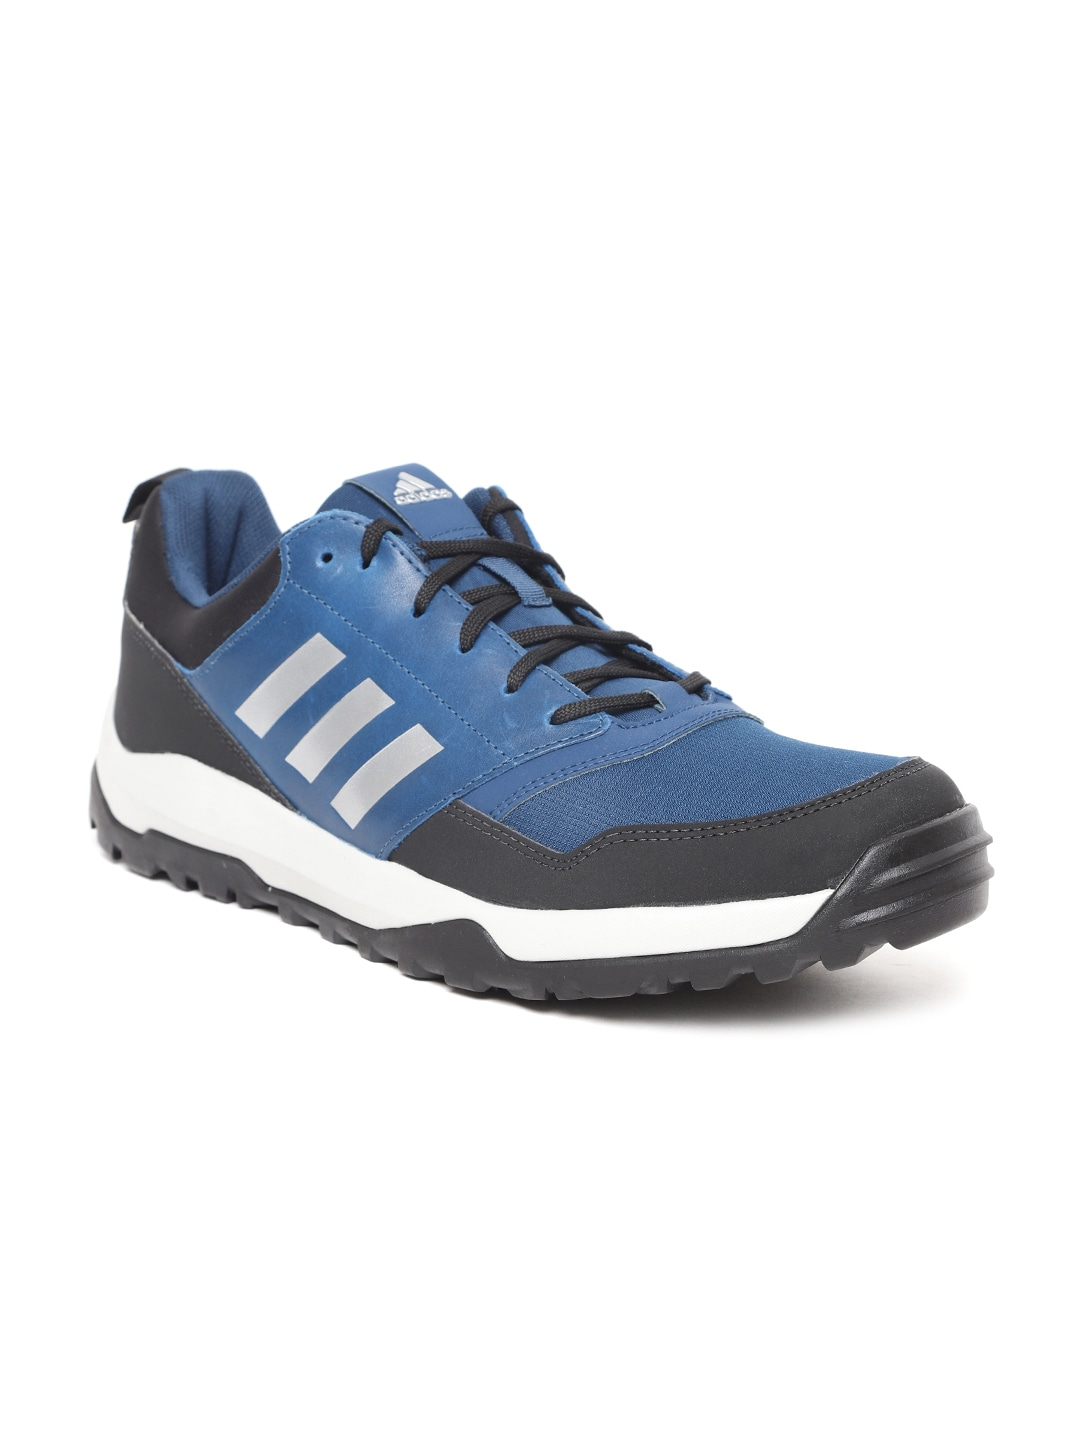 huge discount 73048 187cd Adidas Shoes - Buy Adidas Shoes for Men  Women Online - Mynt